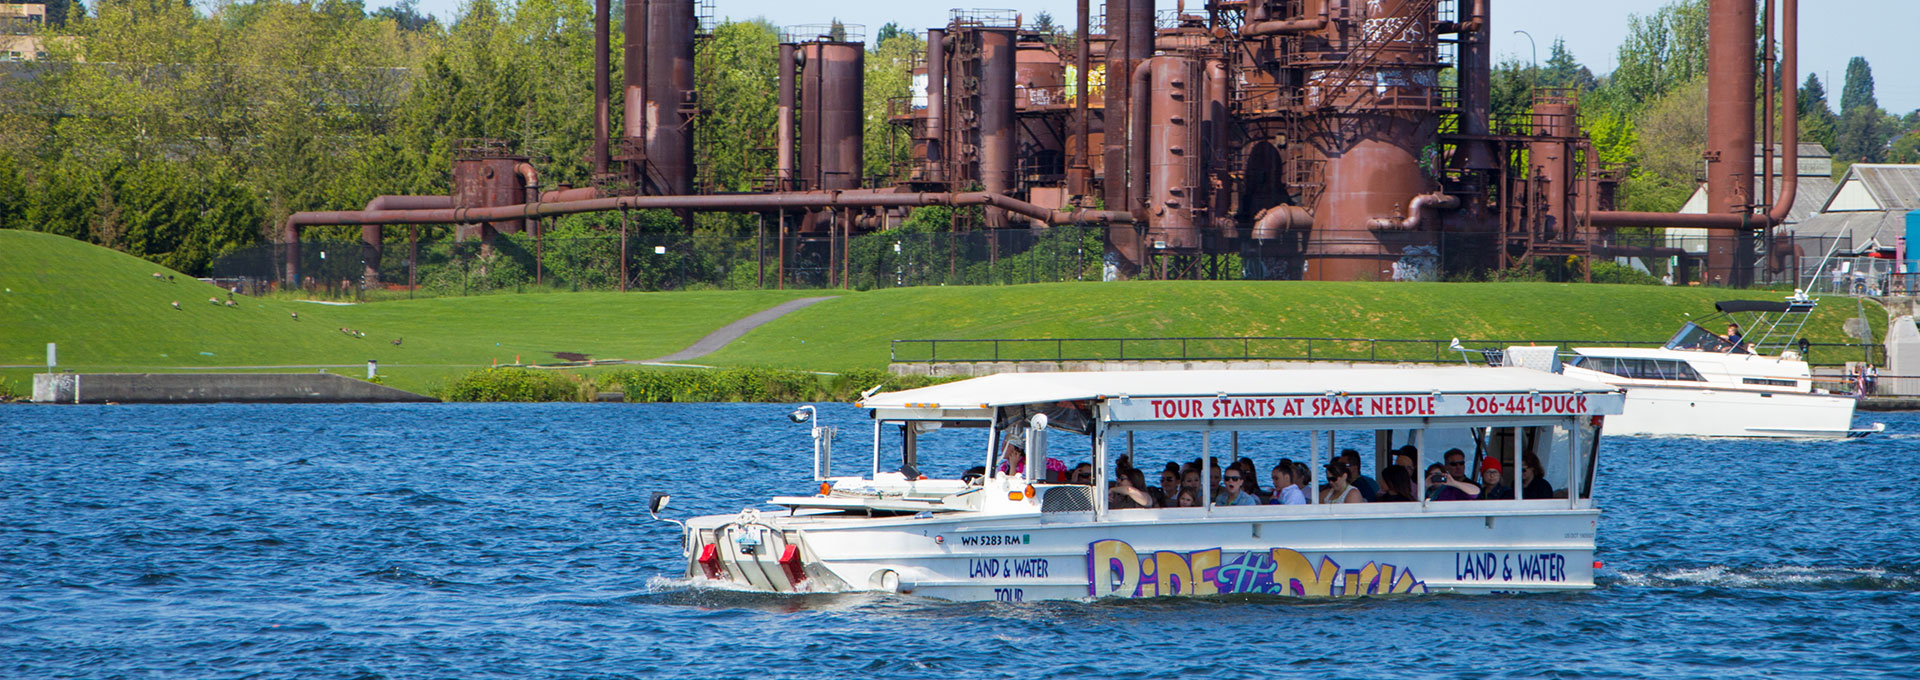 Duck Tour Seattle Coupon